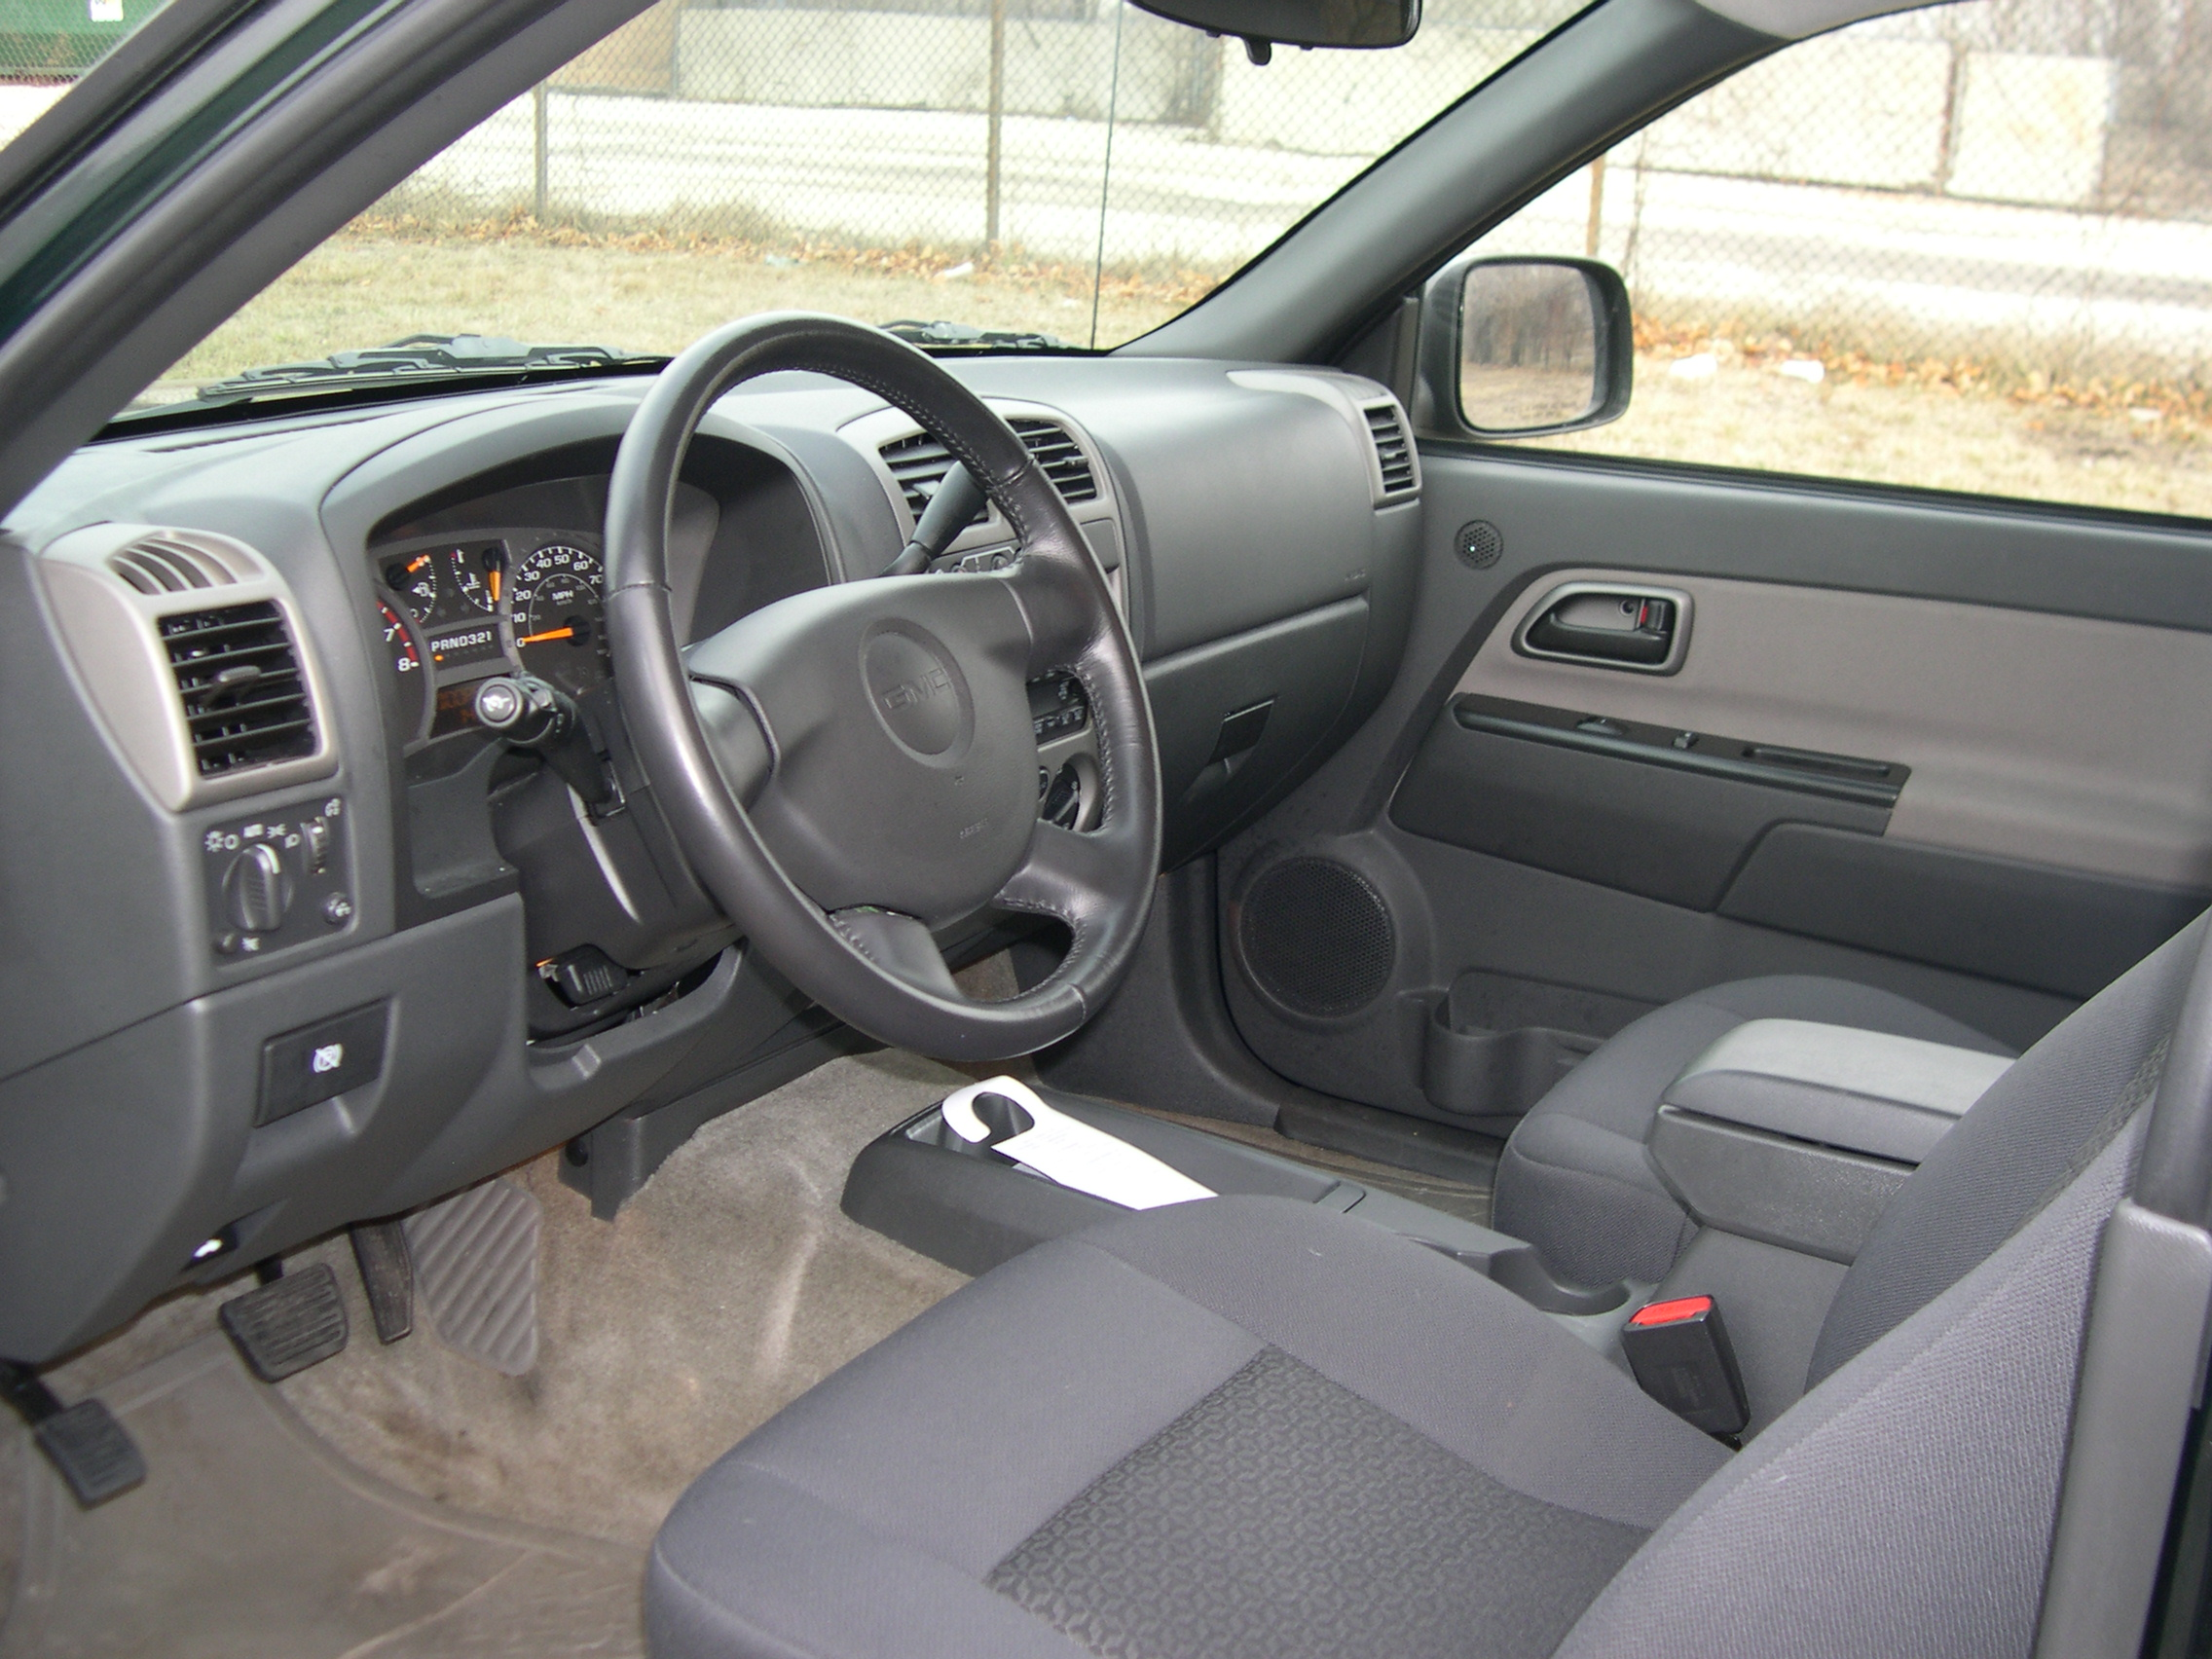 File:GMC Canyon Interior